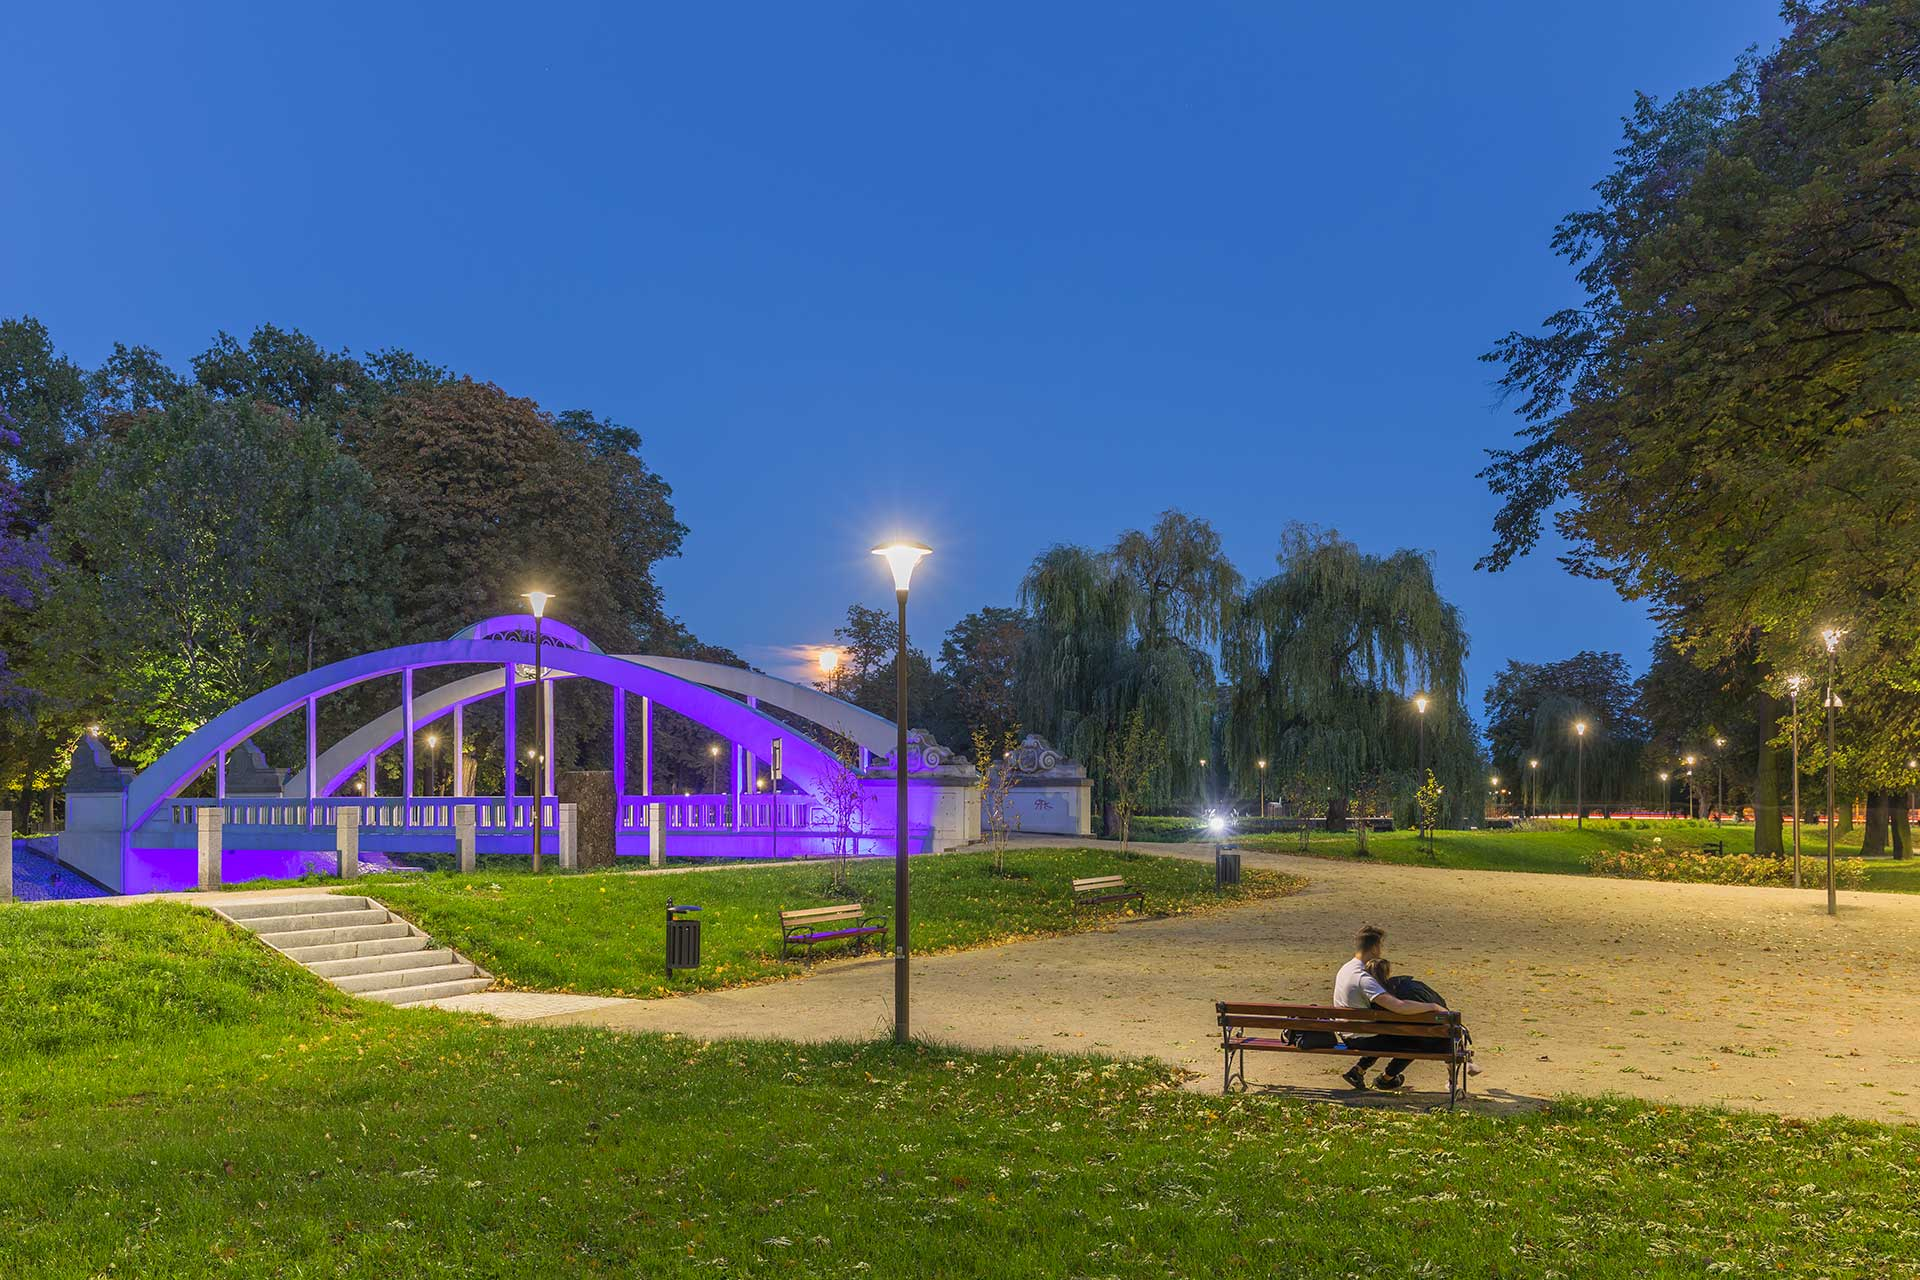 Central Park in Swidnica is a high-quality space for residents to relax or practise sport in the evenings thanks to a energy-efficient lighting solution